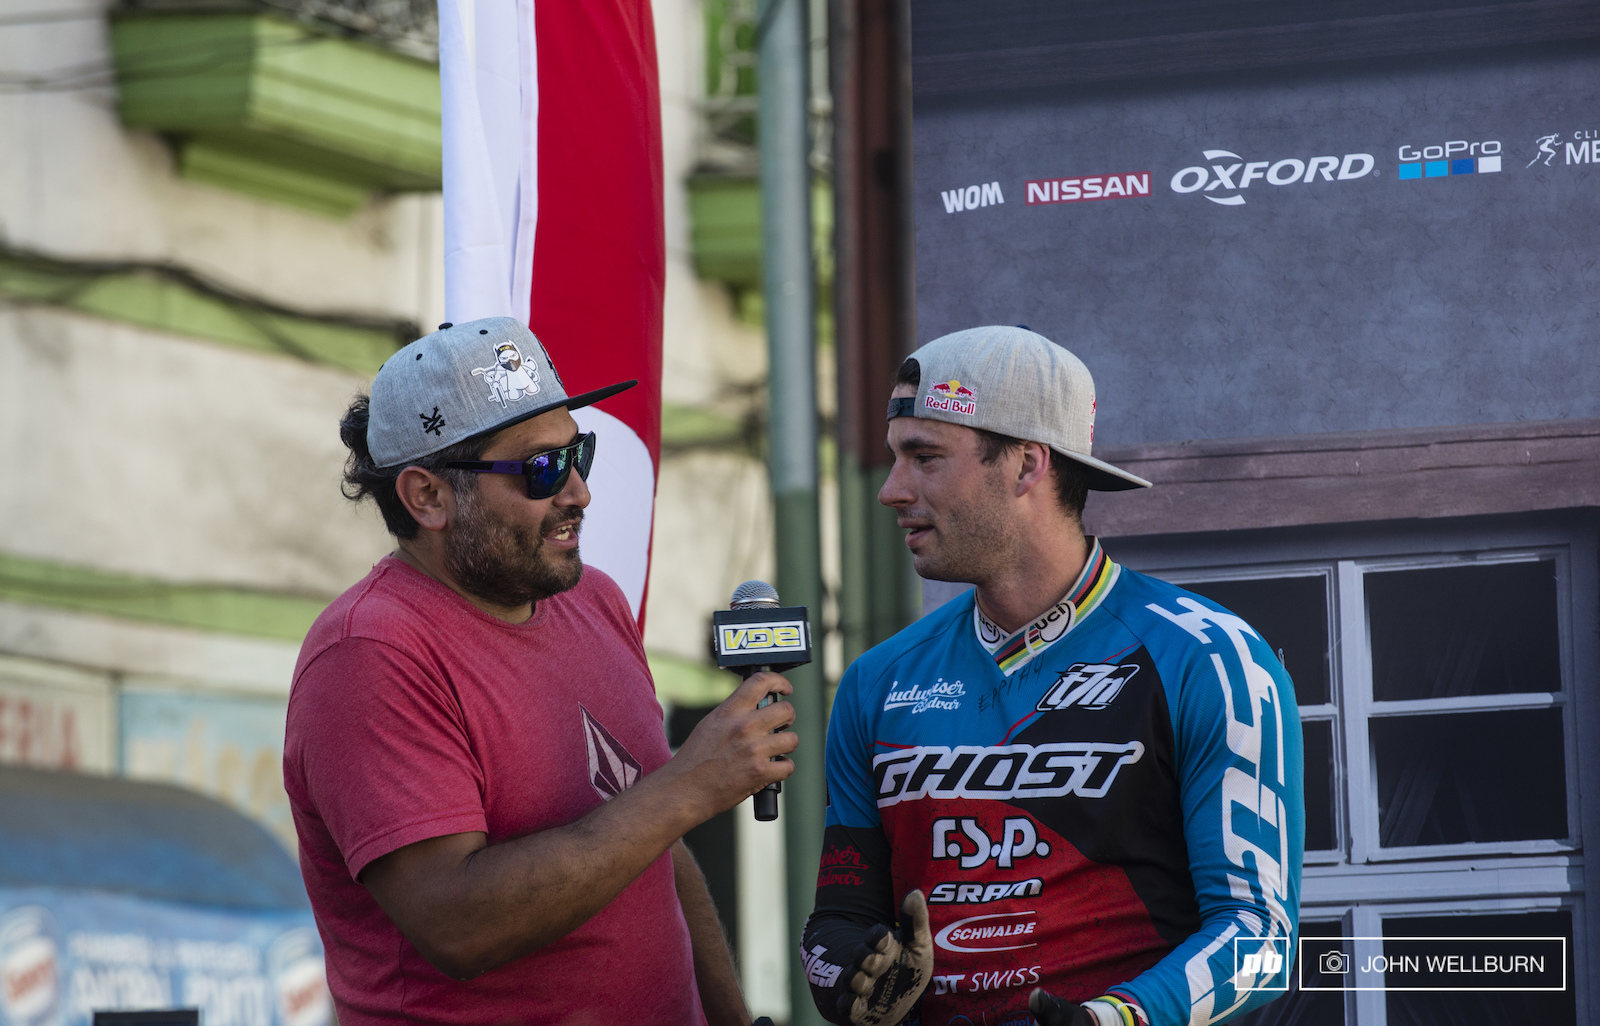 Tomas Slavik jumps on stage for an interview seconds after taking the win.